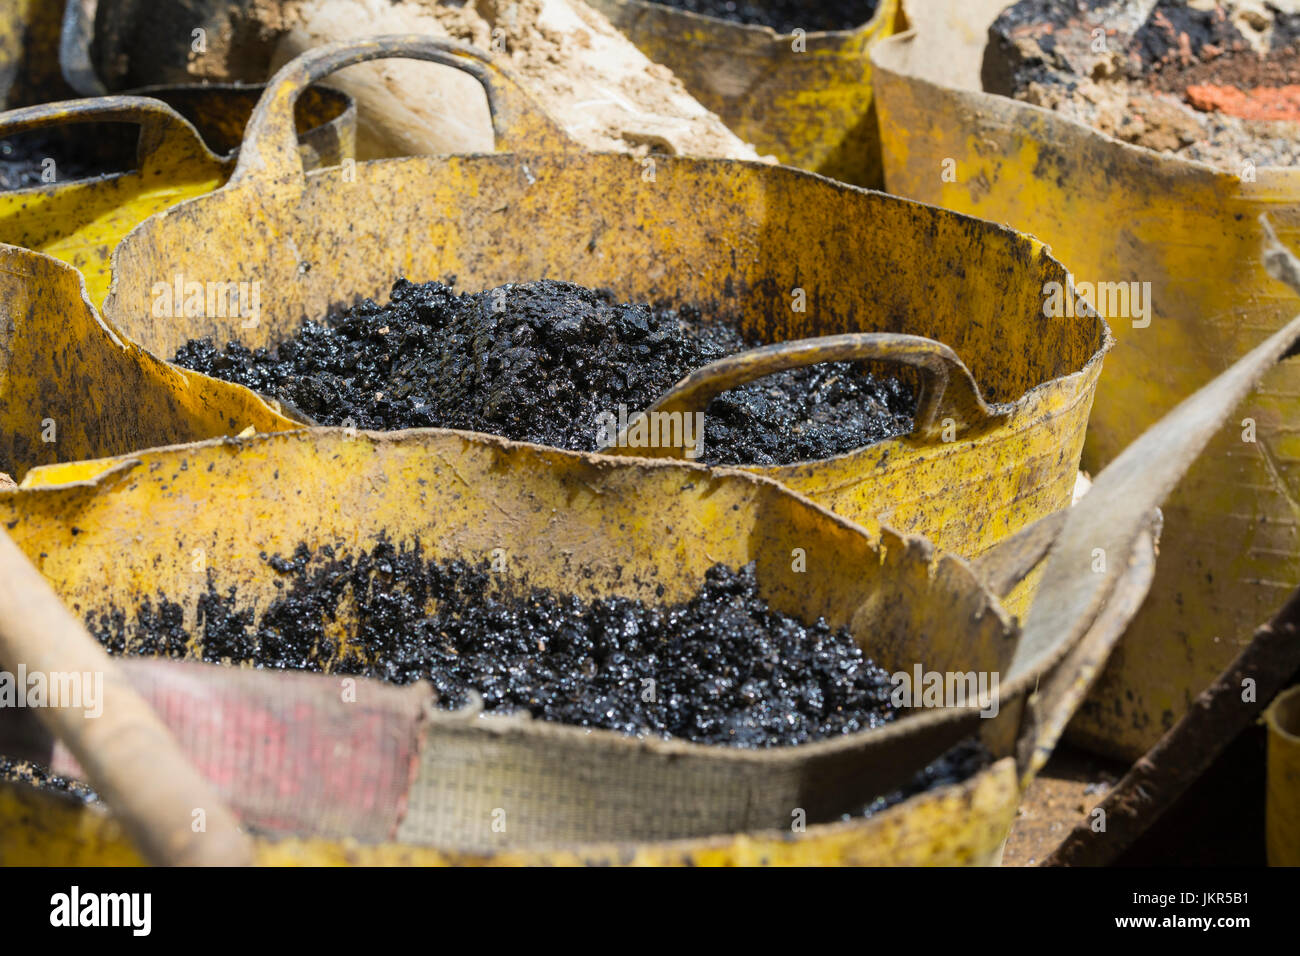 Bitumen in buckets on a construction site ready for use in road resurfacing. AKA Asphalt and Tar. - Stock Image